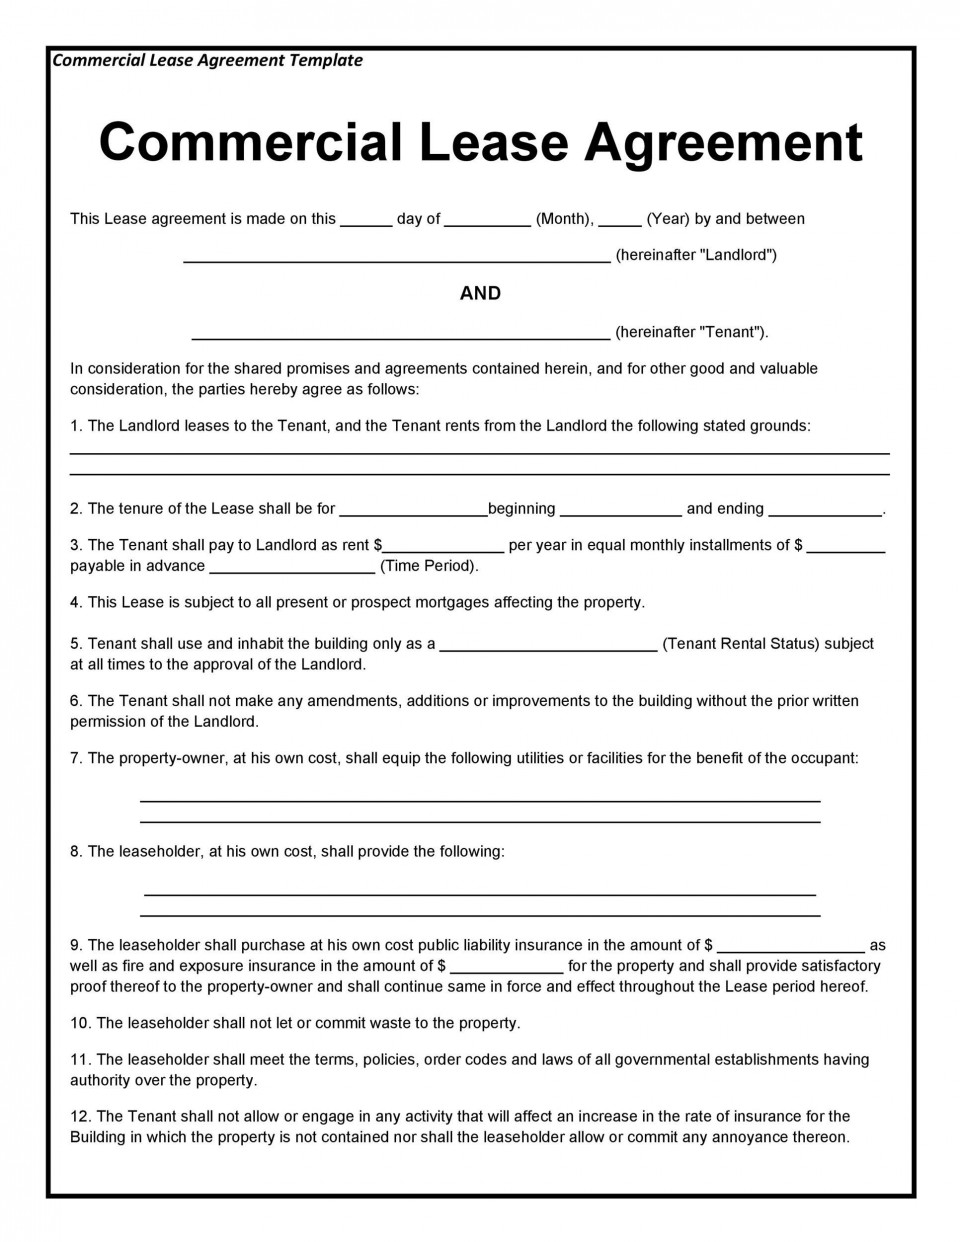 004 Best Template For Lease Agreement Free Photo  Printable Room Rental Commercial Uk Florida960